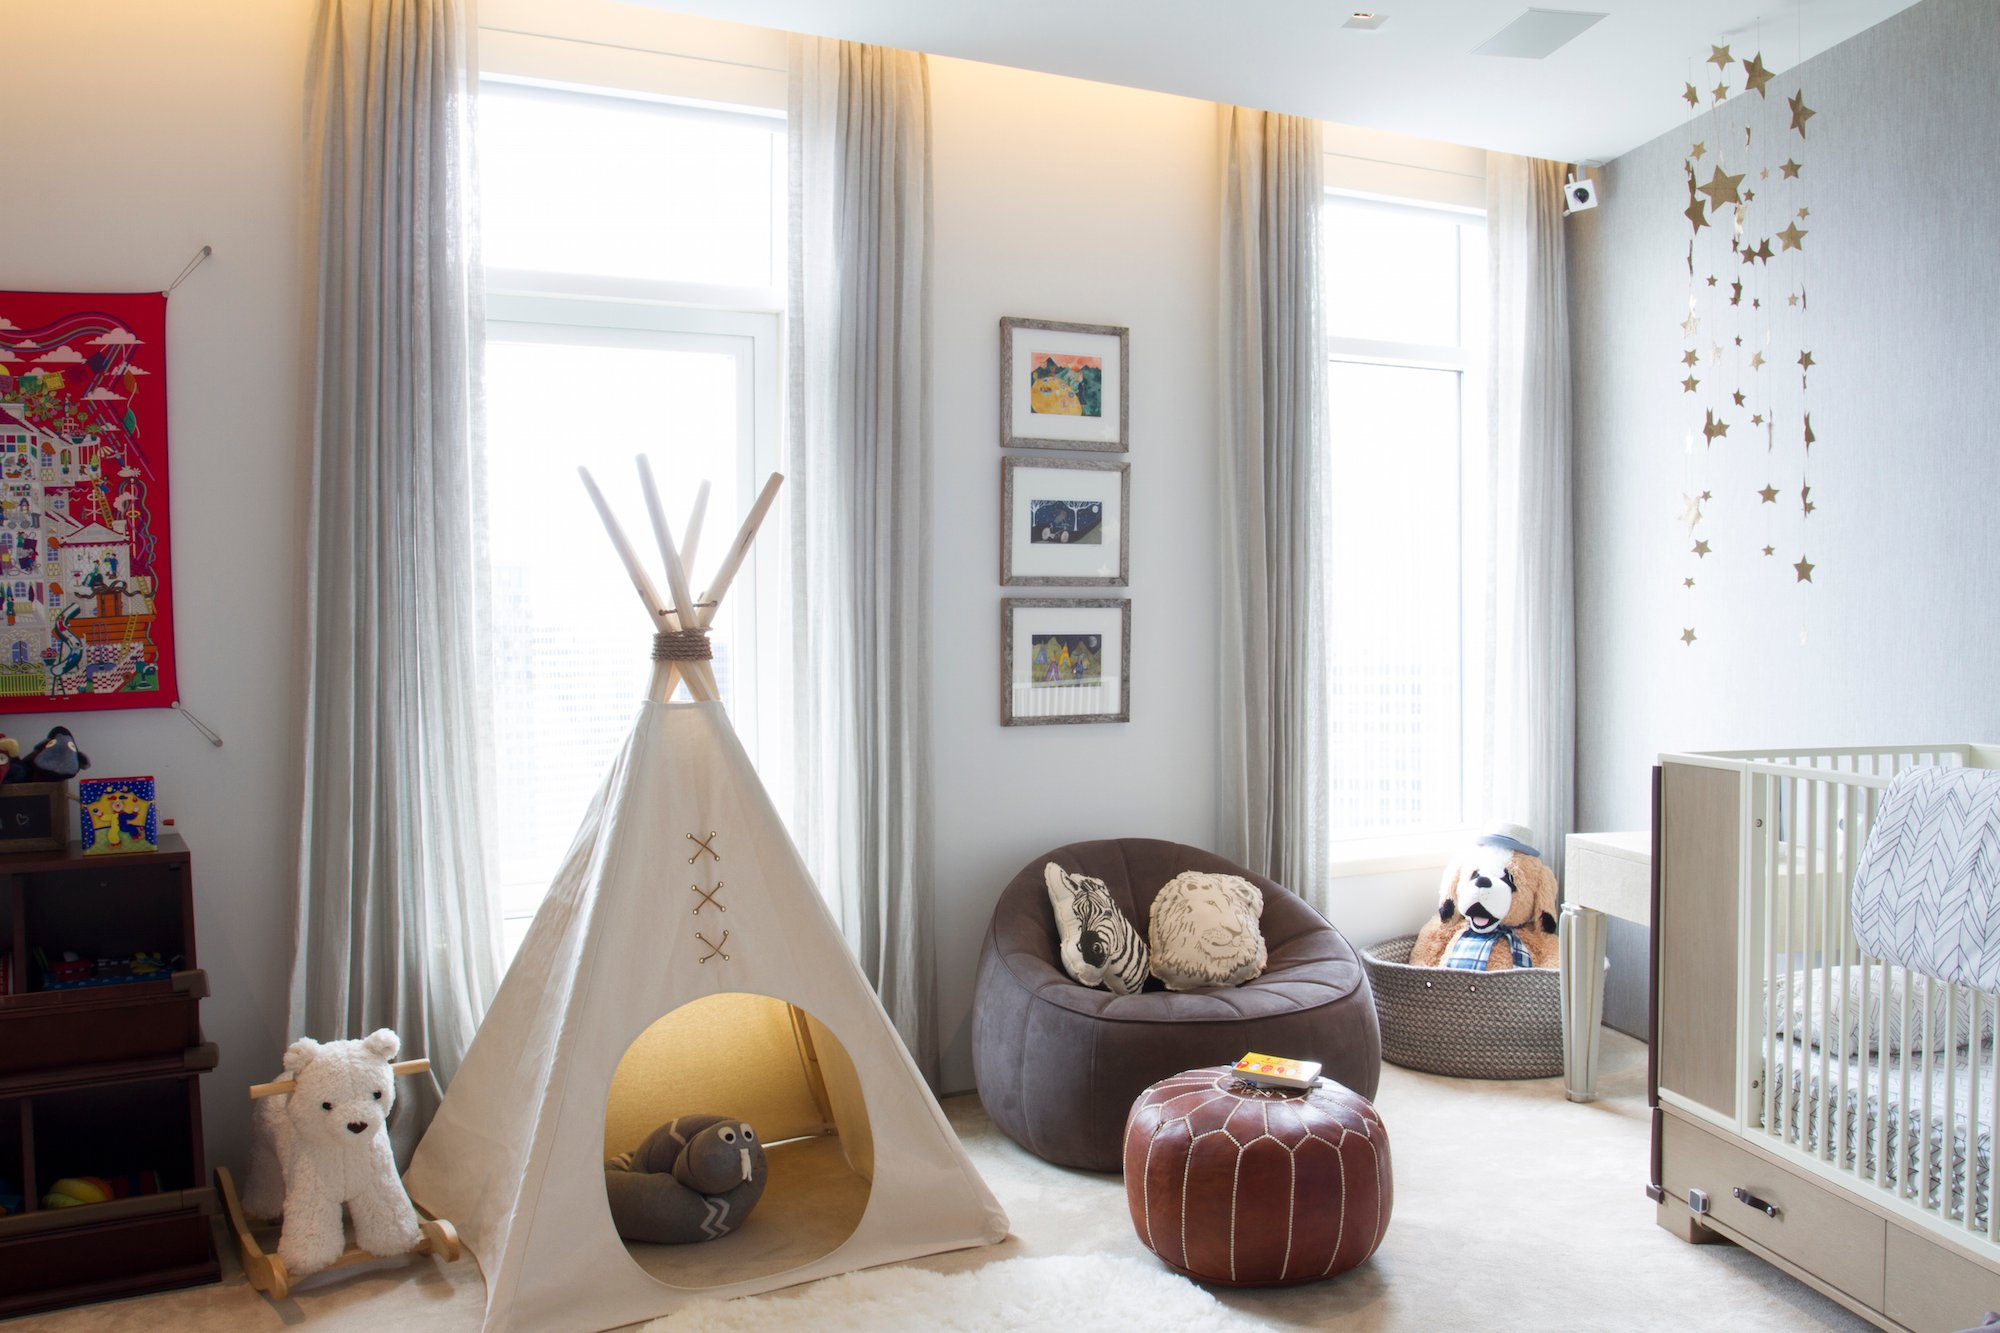 A Playful Baby Boy Nursery Complete With Teepee, Stuffed Animals U0026 Creative  Shelving. Designed